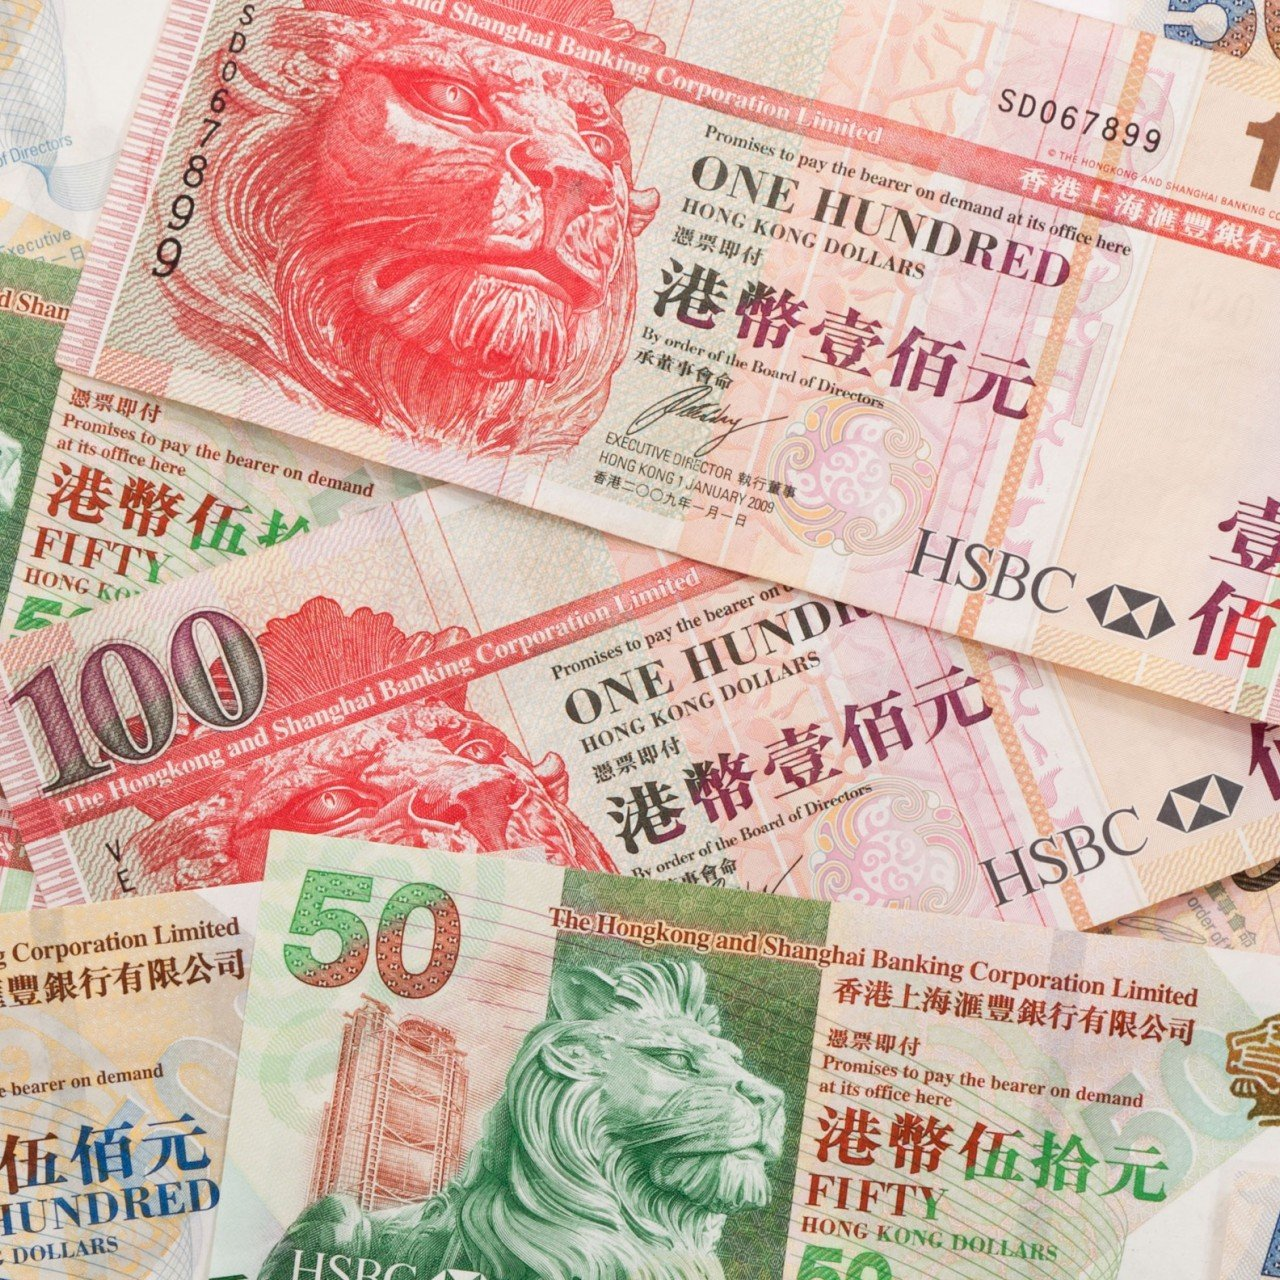 Hong Kong is about to trigger a global financial crisis